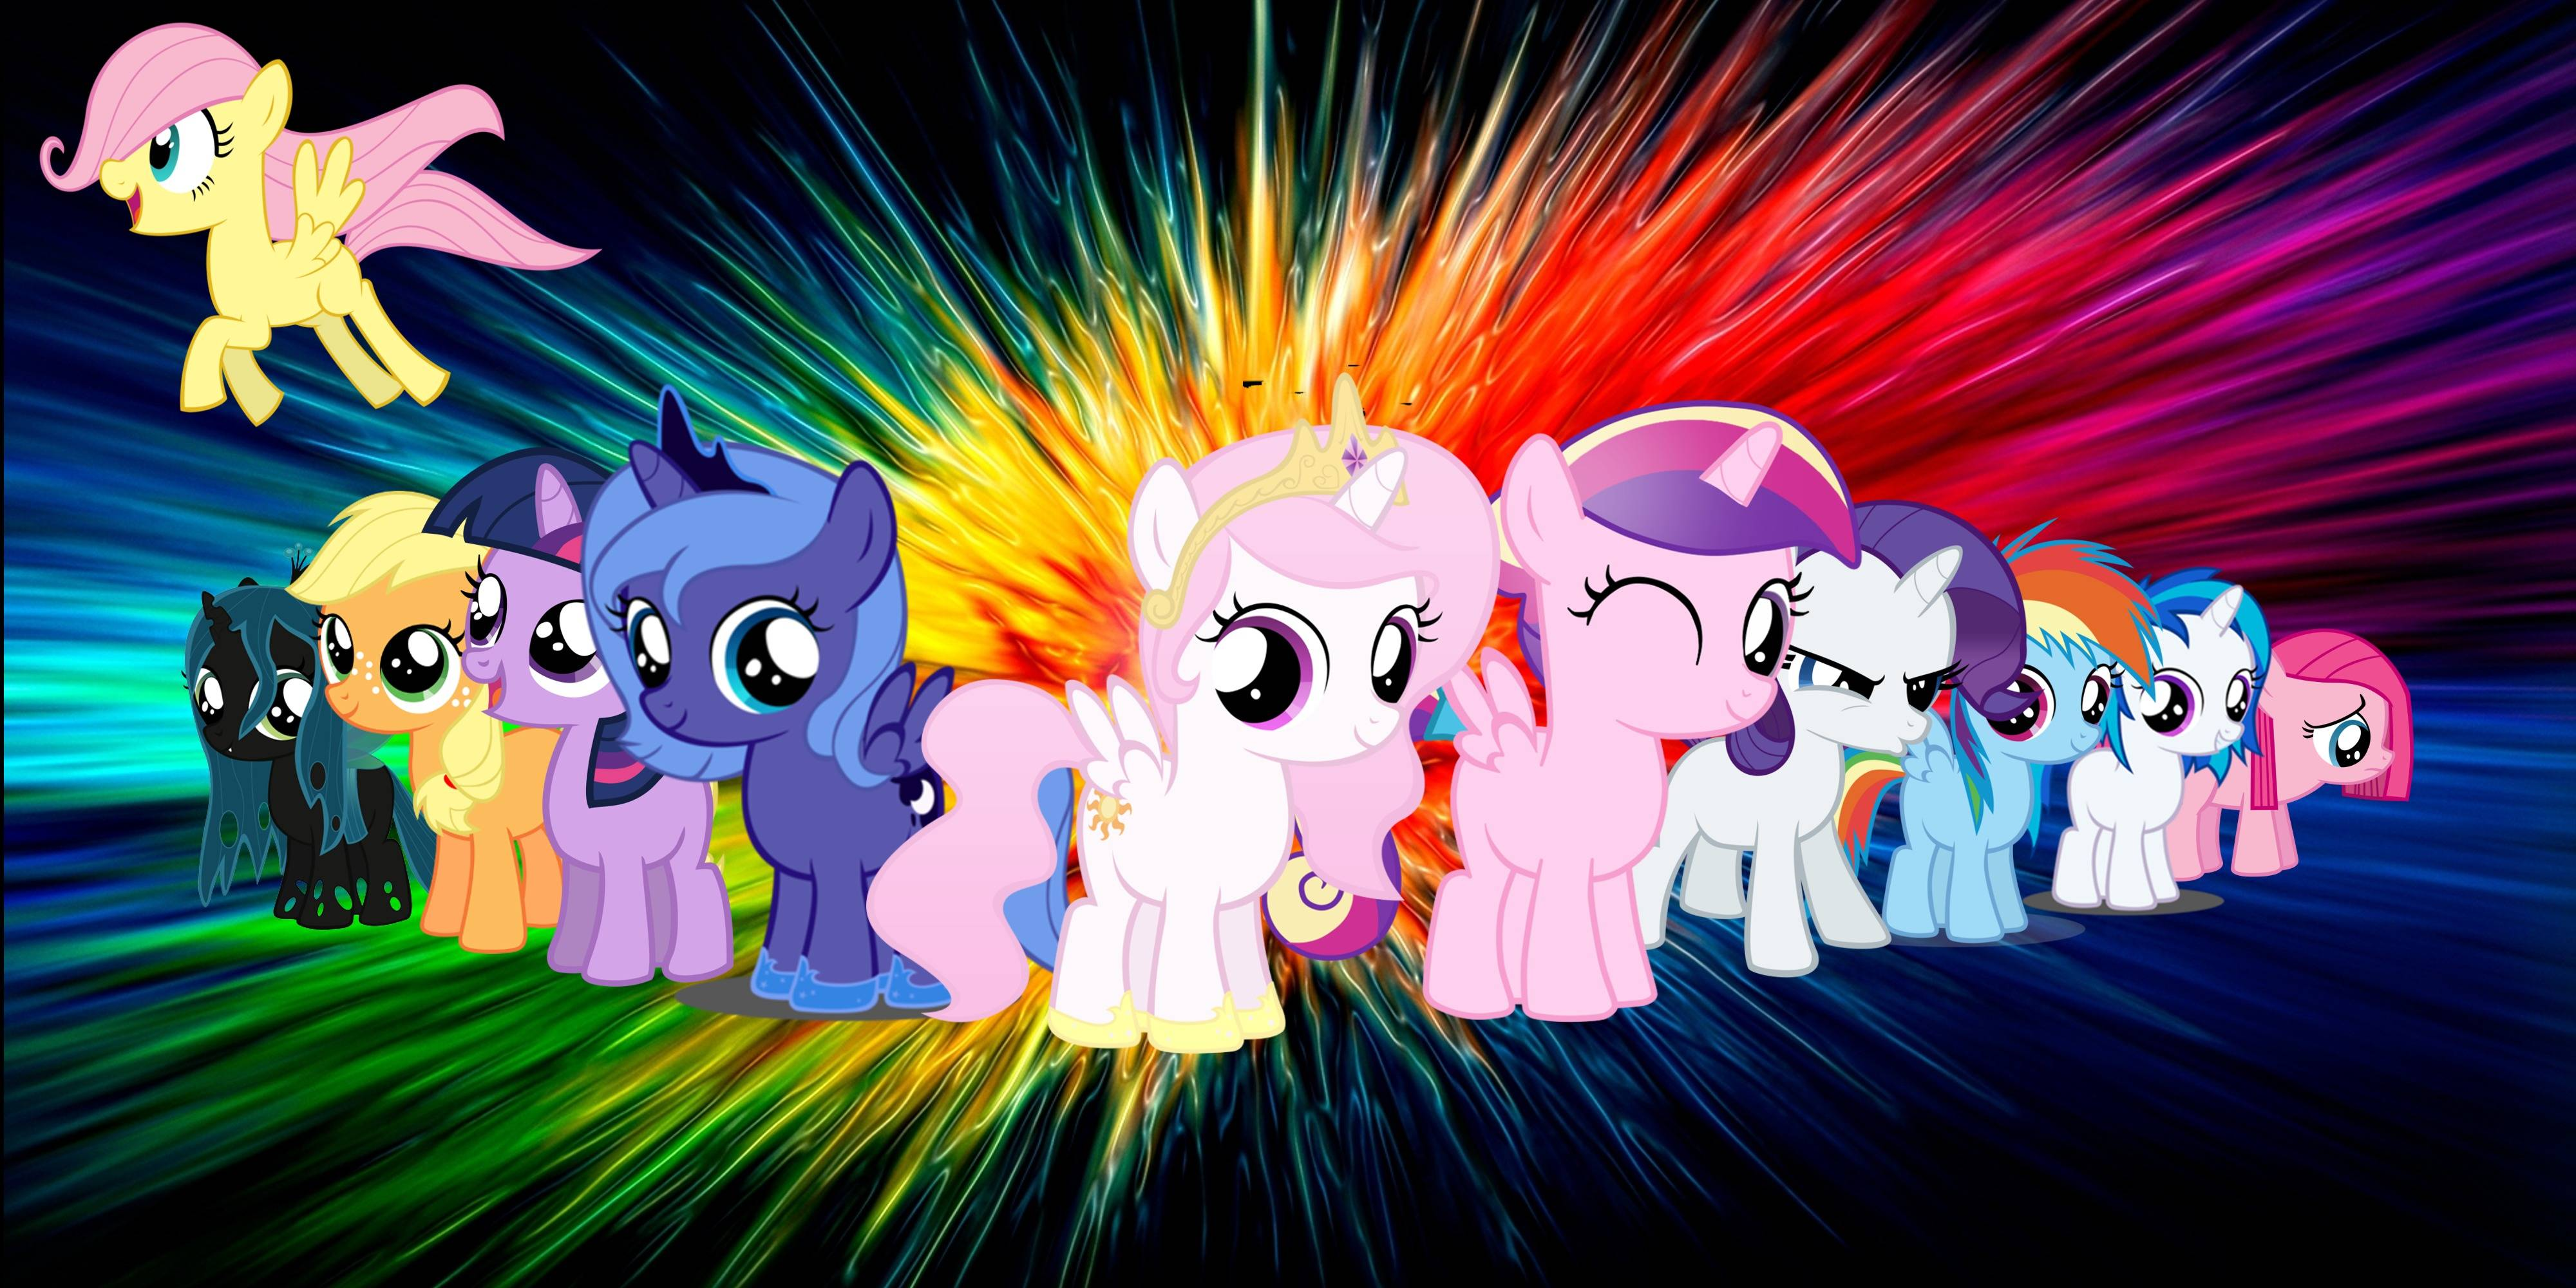 MLP:fim Mane6 Wallpaper Practice by DesignJH on DeviantArt